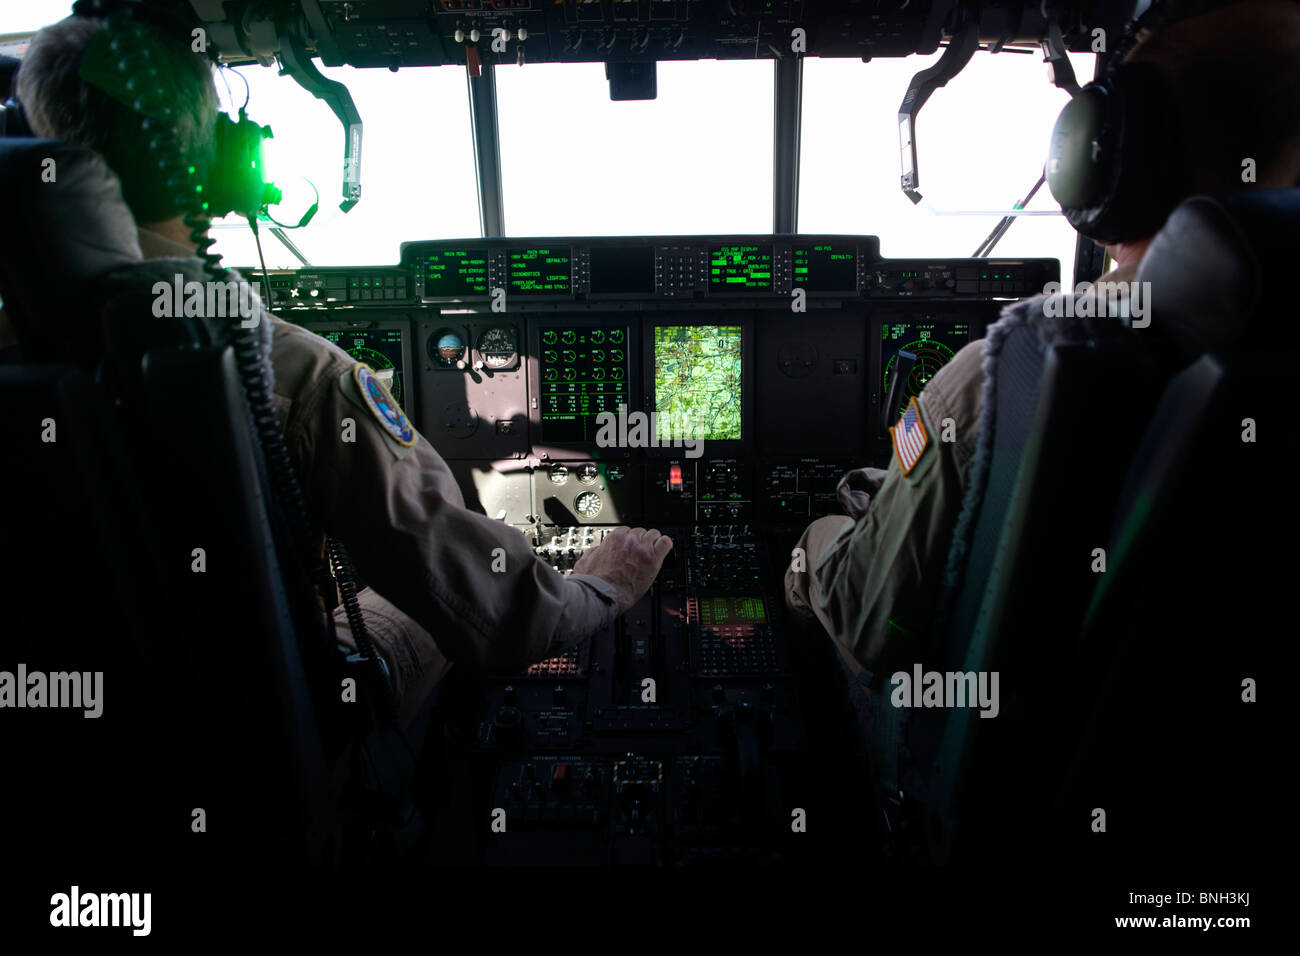 Green light from the Head-Up Display (HUD) in the cockpit of a Lockheed Martin-built C-130J Super Hercules airlifter. - Stock Image